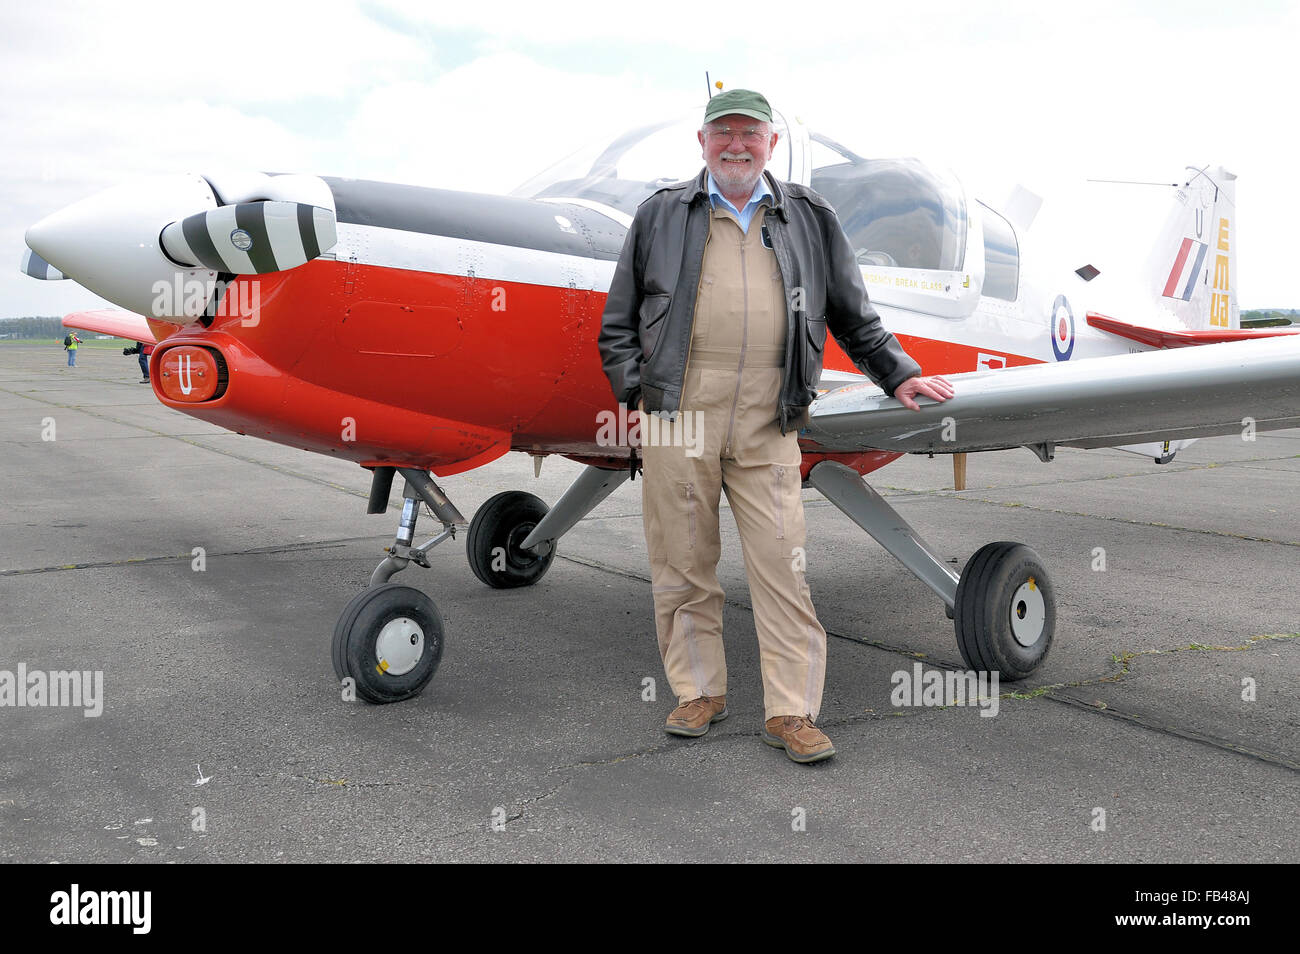 Rod Dean has been displaying civil aircraft since 1984 when he retired from the RAF after 21 years of military service. - Stock Image